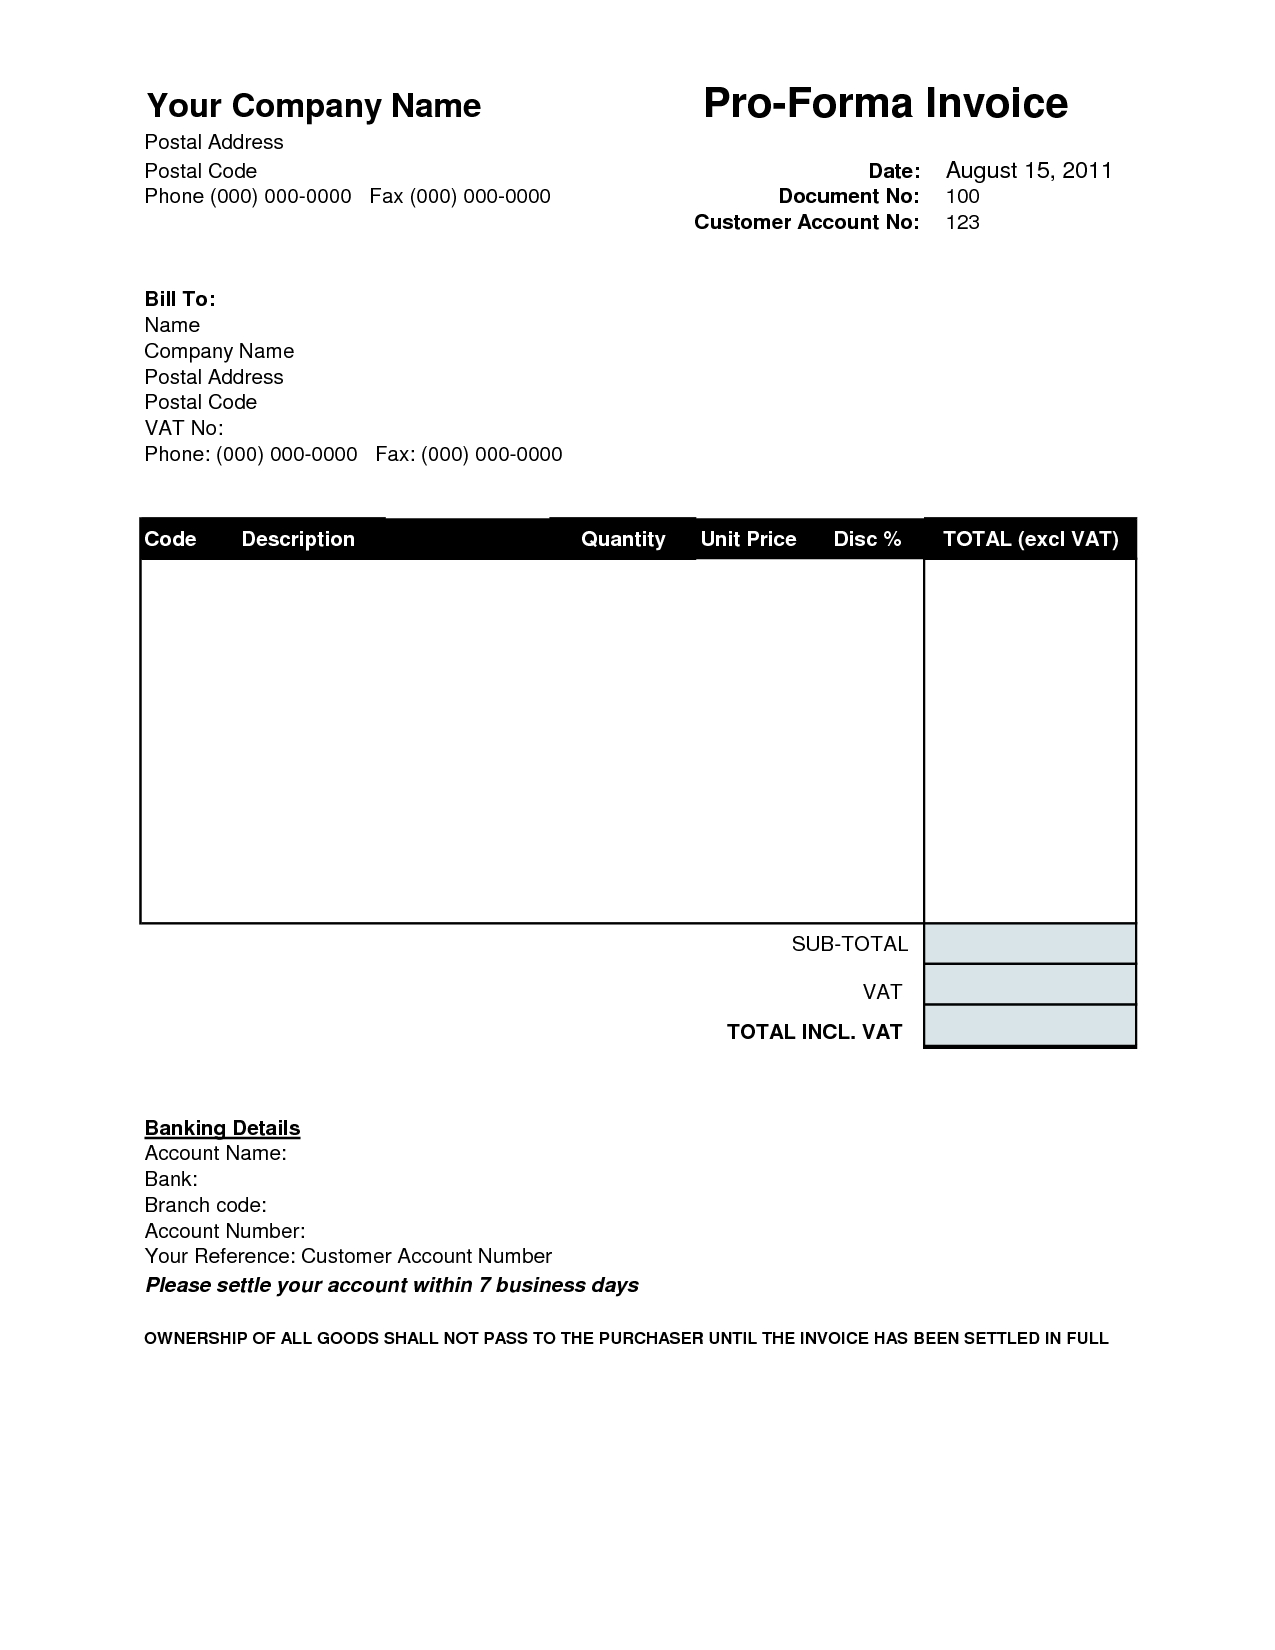 proforma invoice template free download invoice template proforma invoice template free download 1275 X 1650